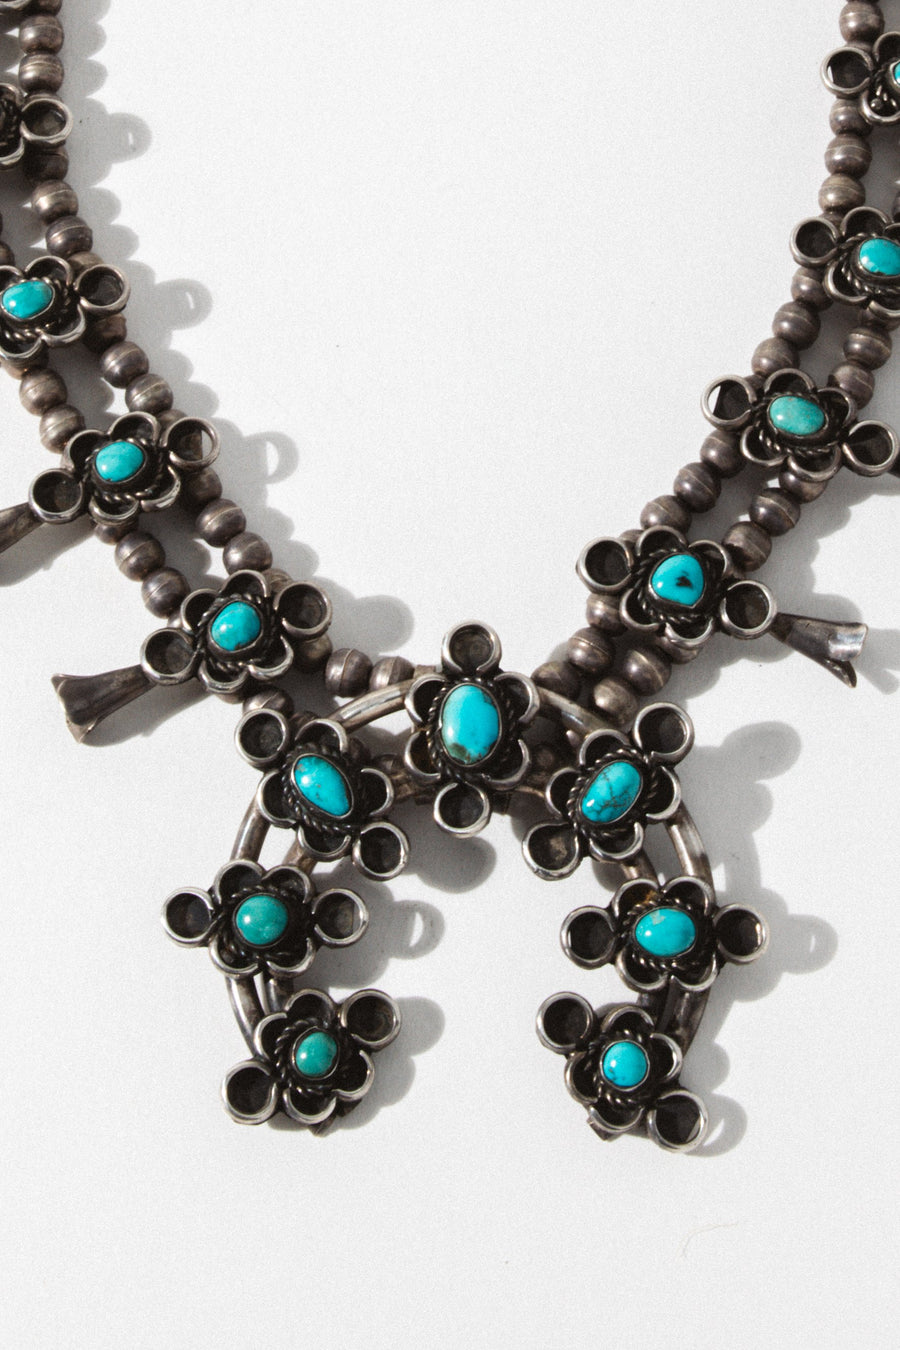 Child of Wild Jewelry Silver / 24 Inches Vintage Kingman Turquoise Squash Blossom Necklace